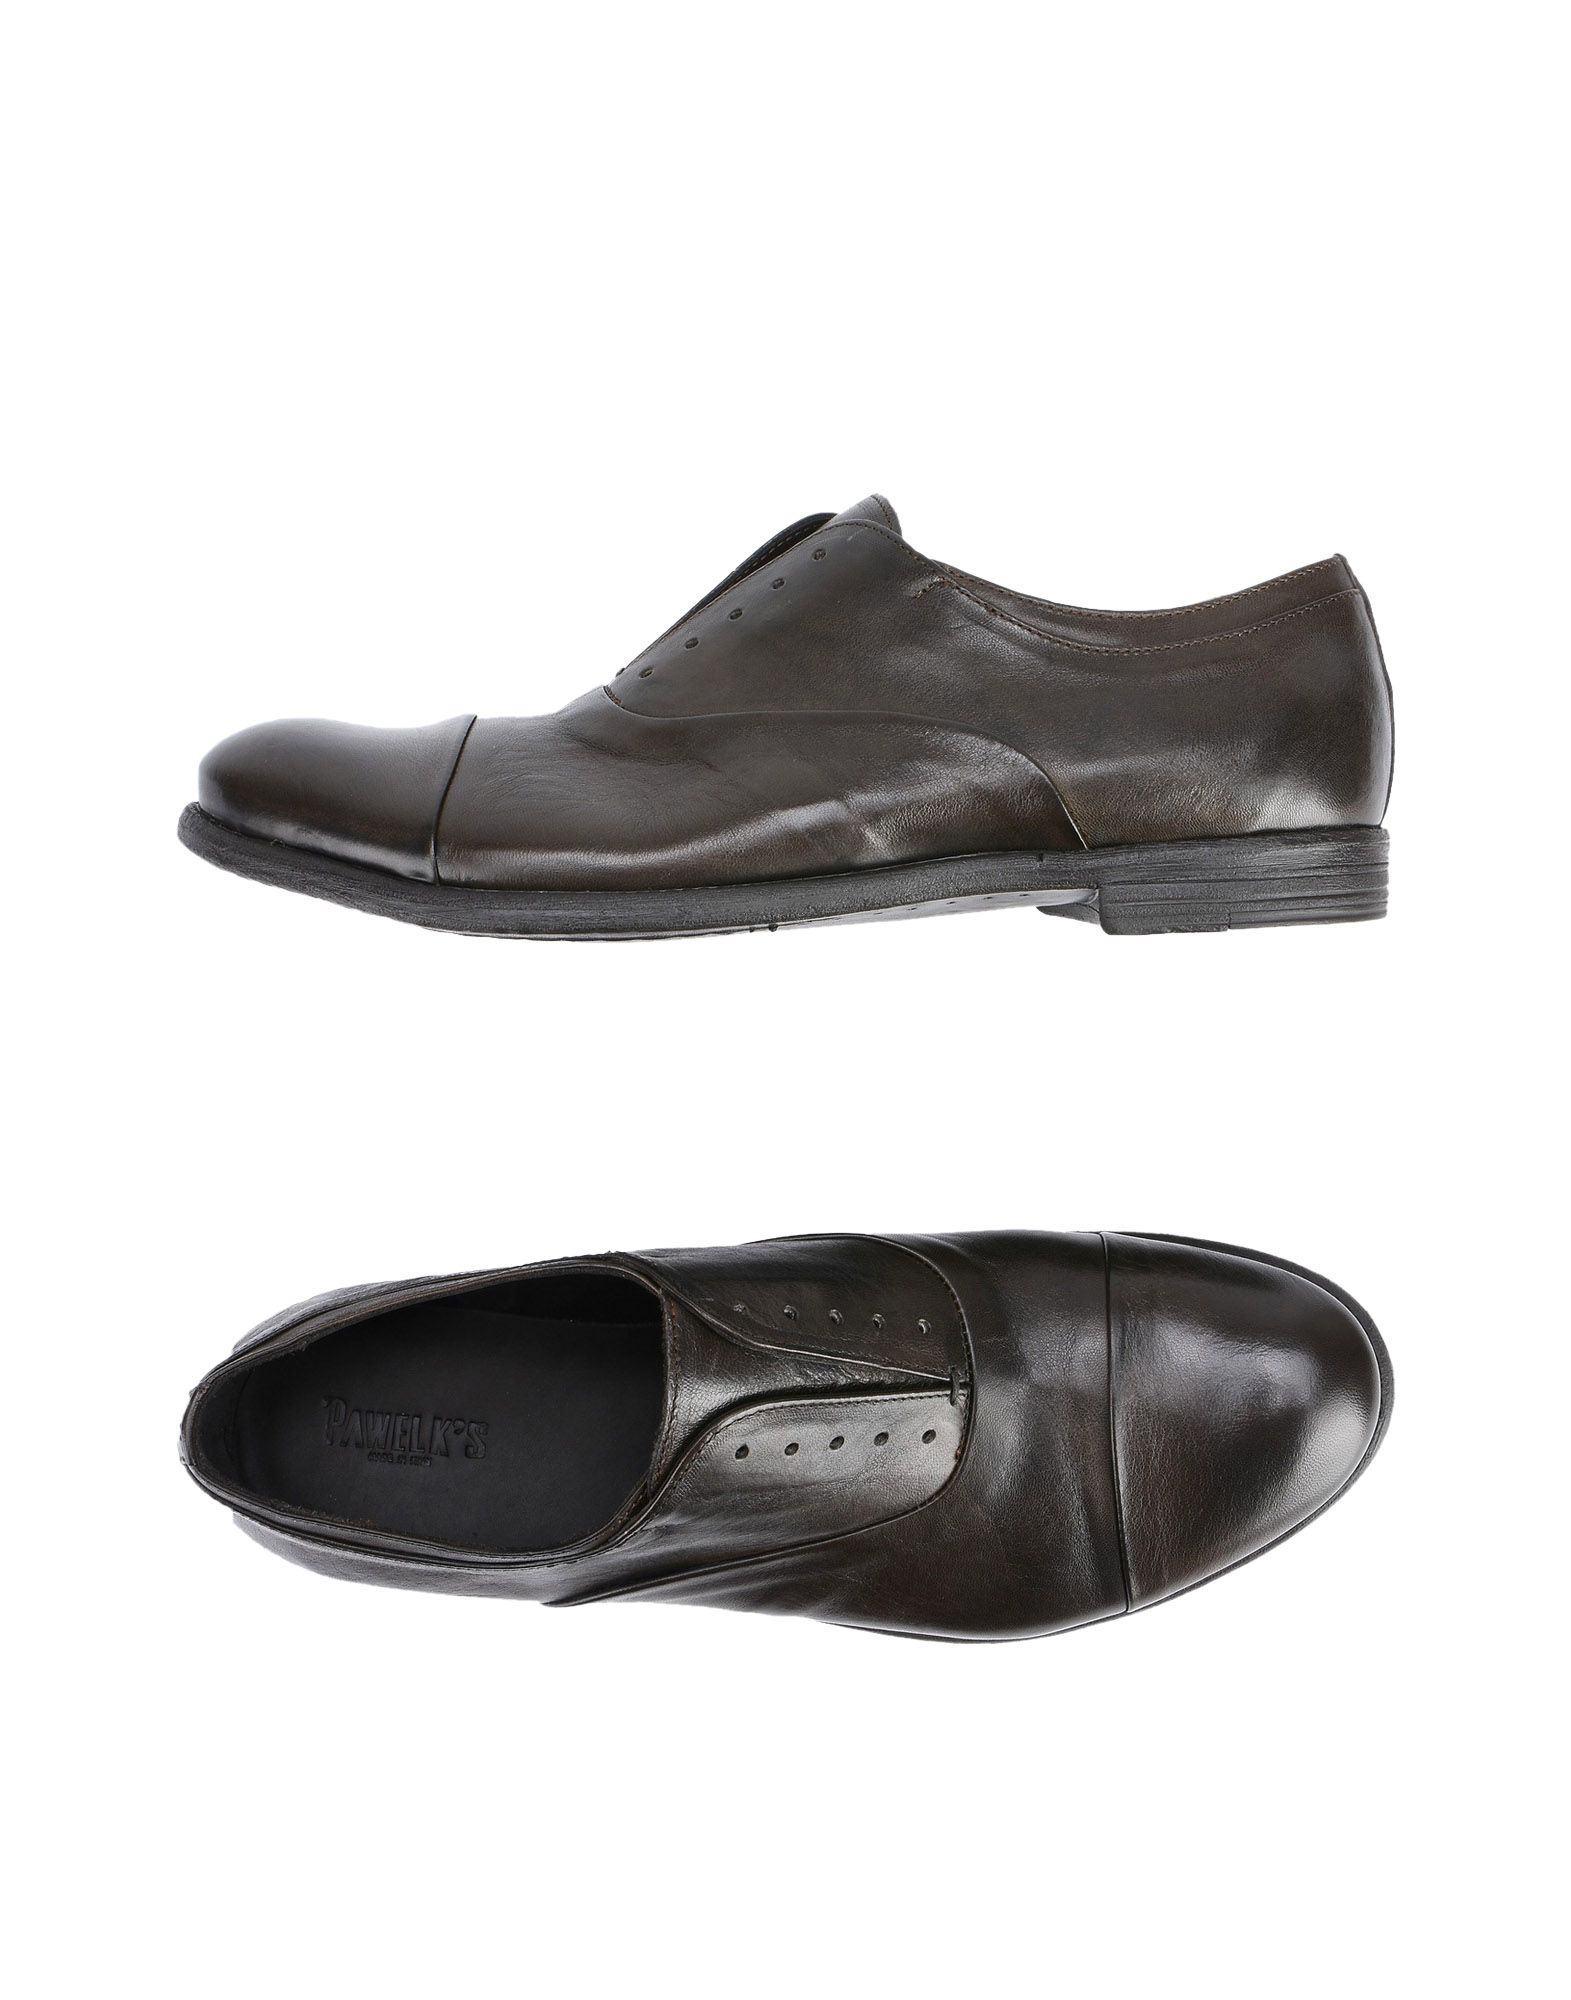 PAWELK'S Loafers in Cocoa